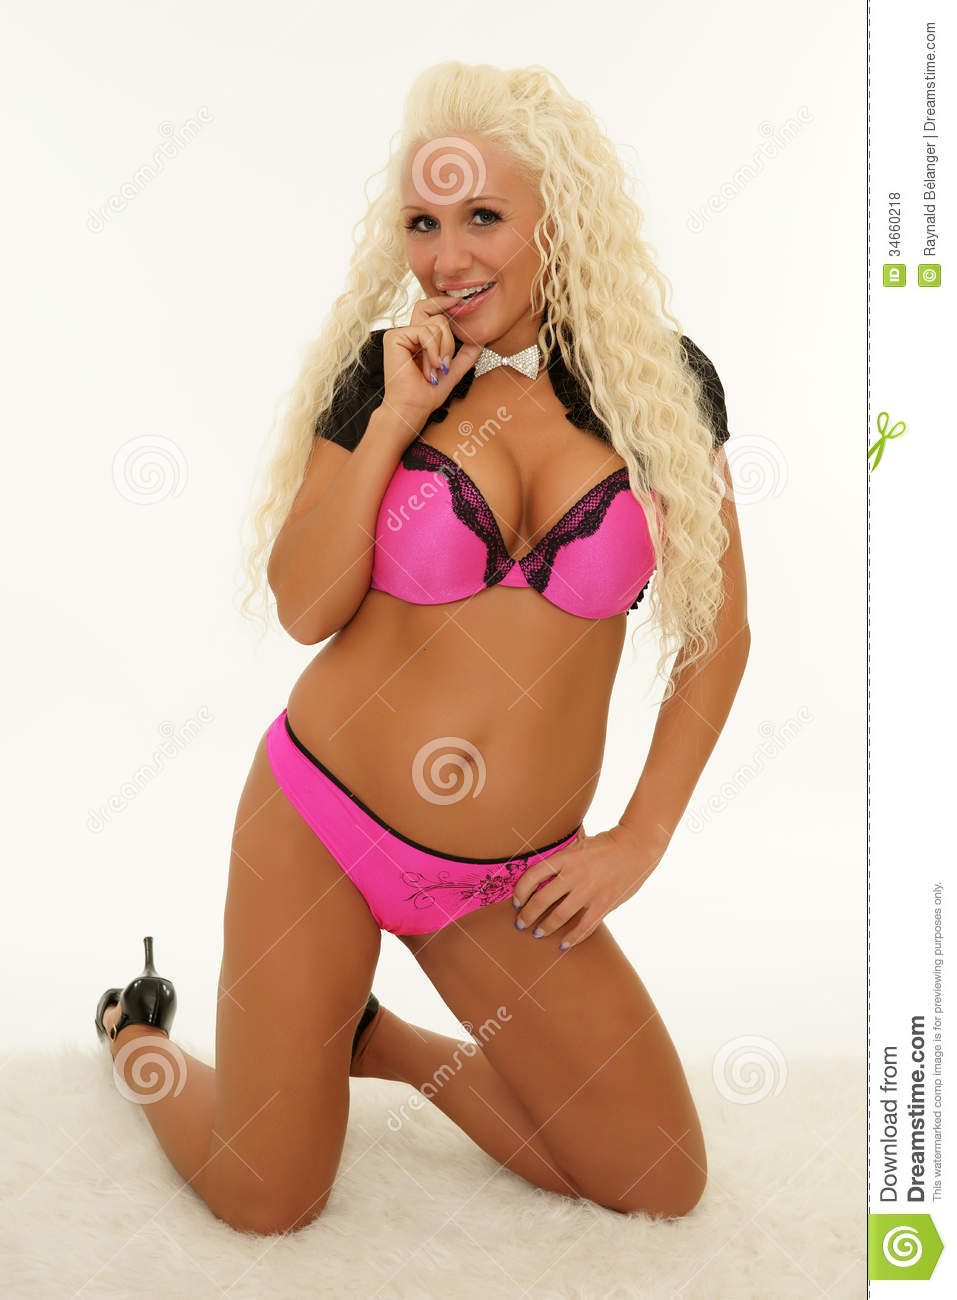 happy mature blond smiling in lingerie stock photo - image of human